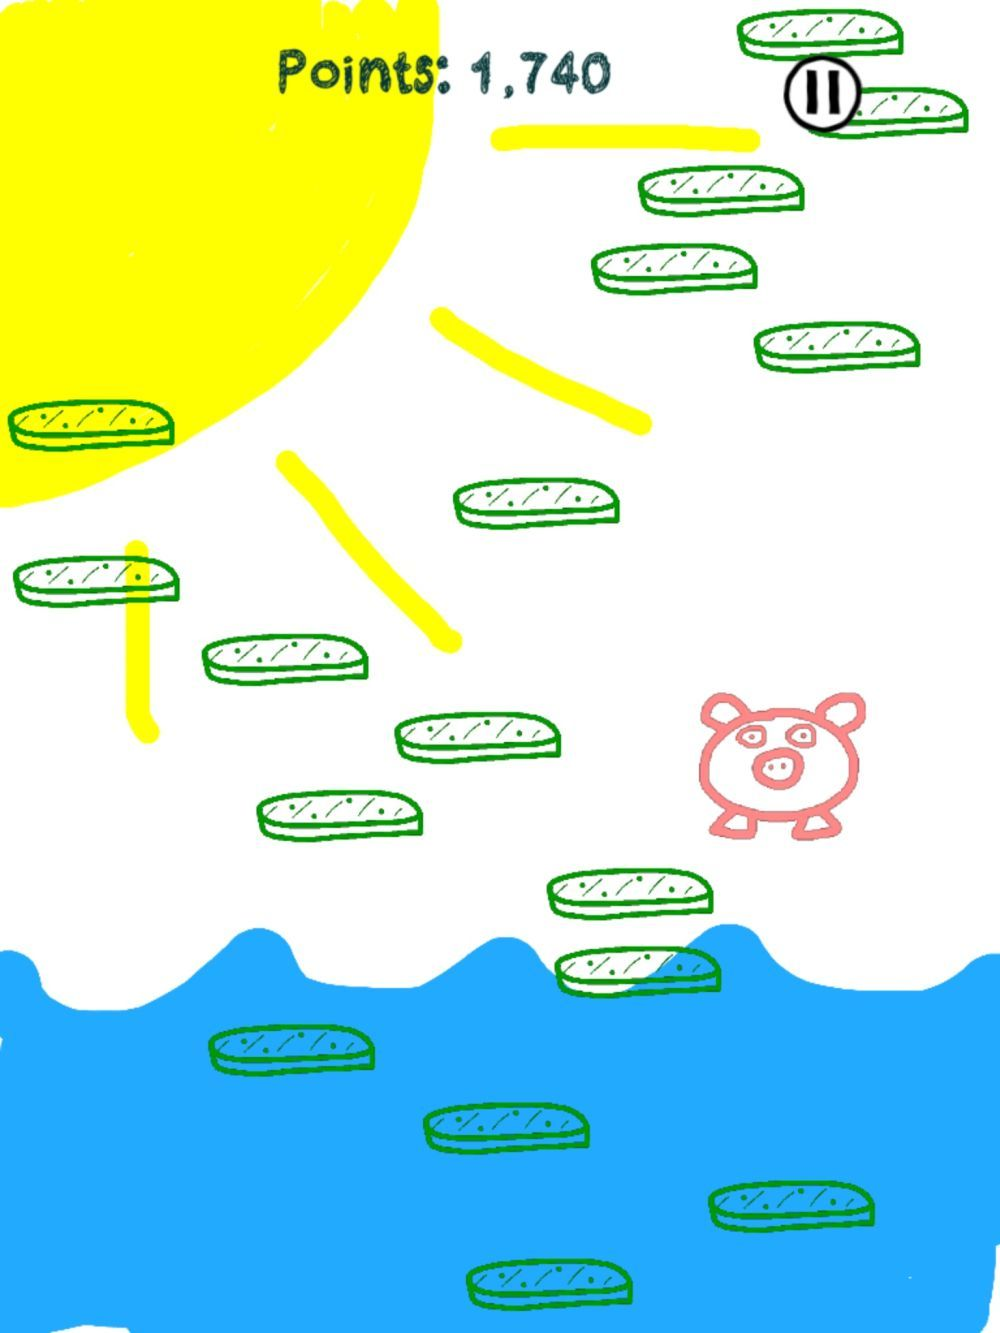 Pickle Jump: Quite possibly the best game involving pigs and pickles ever created.